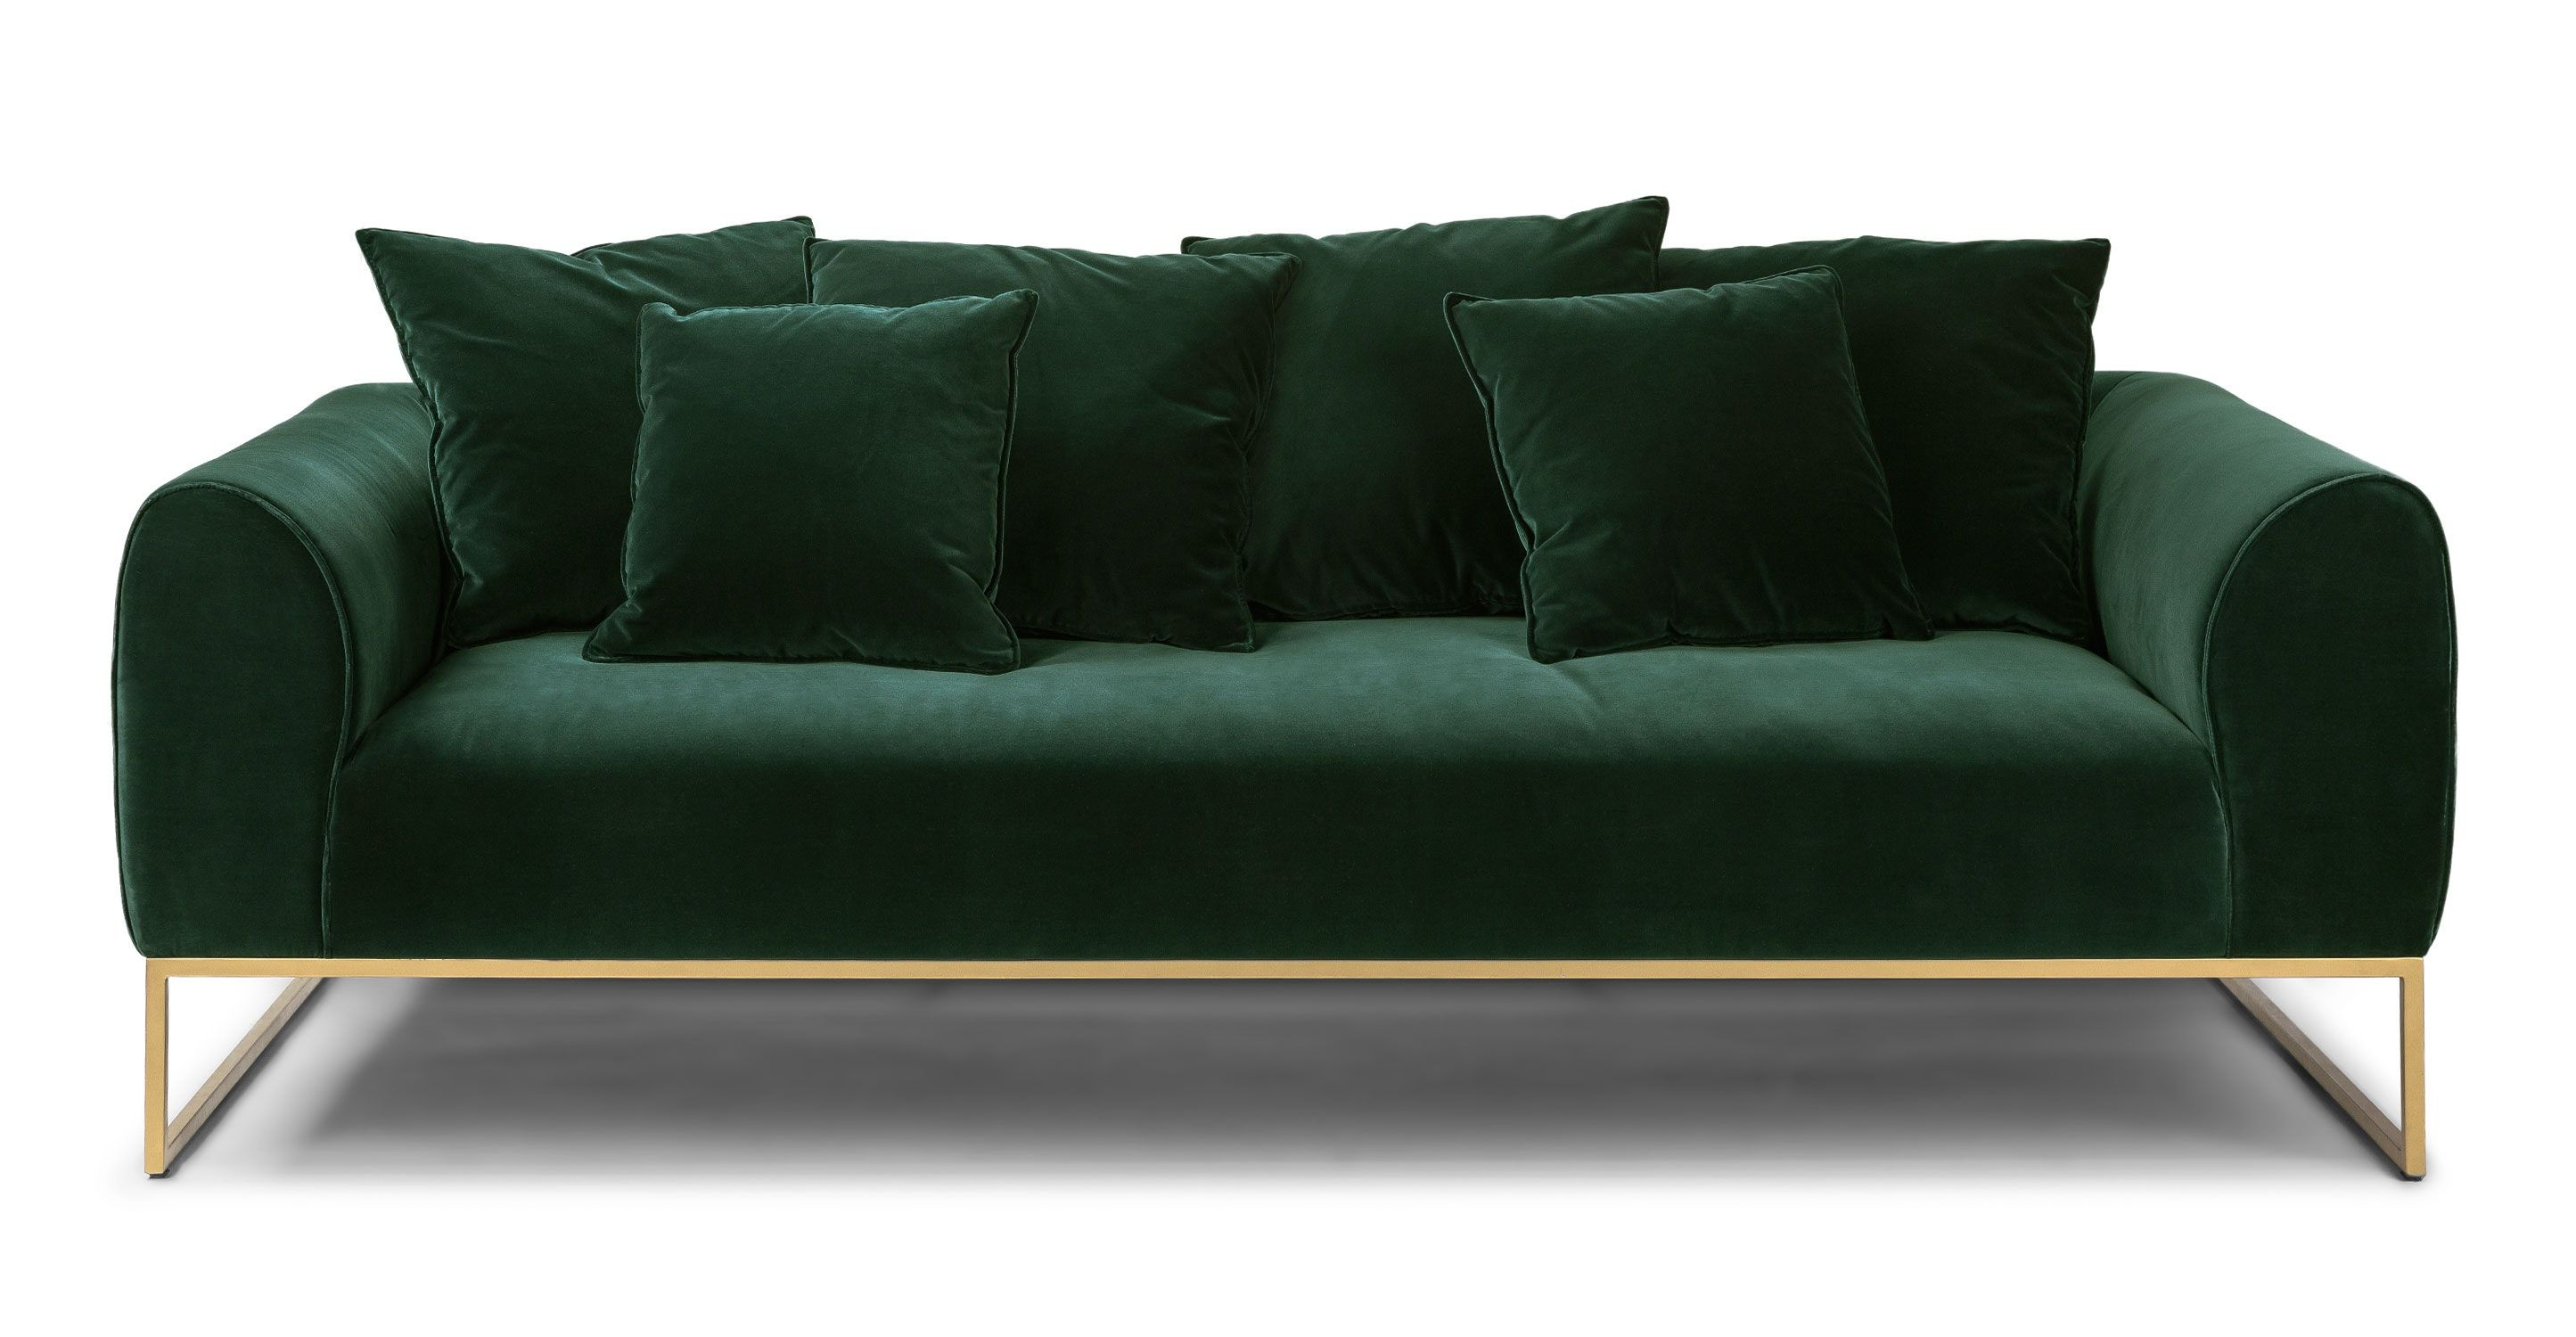 Kits Balsam Green Sofa In 2020 Green Sofa Sofa Green Velvet Sofa